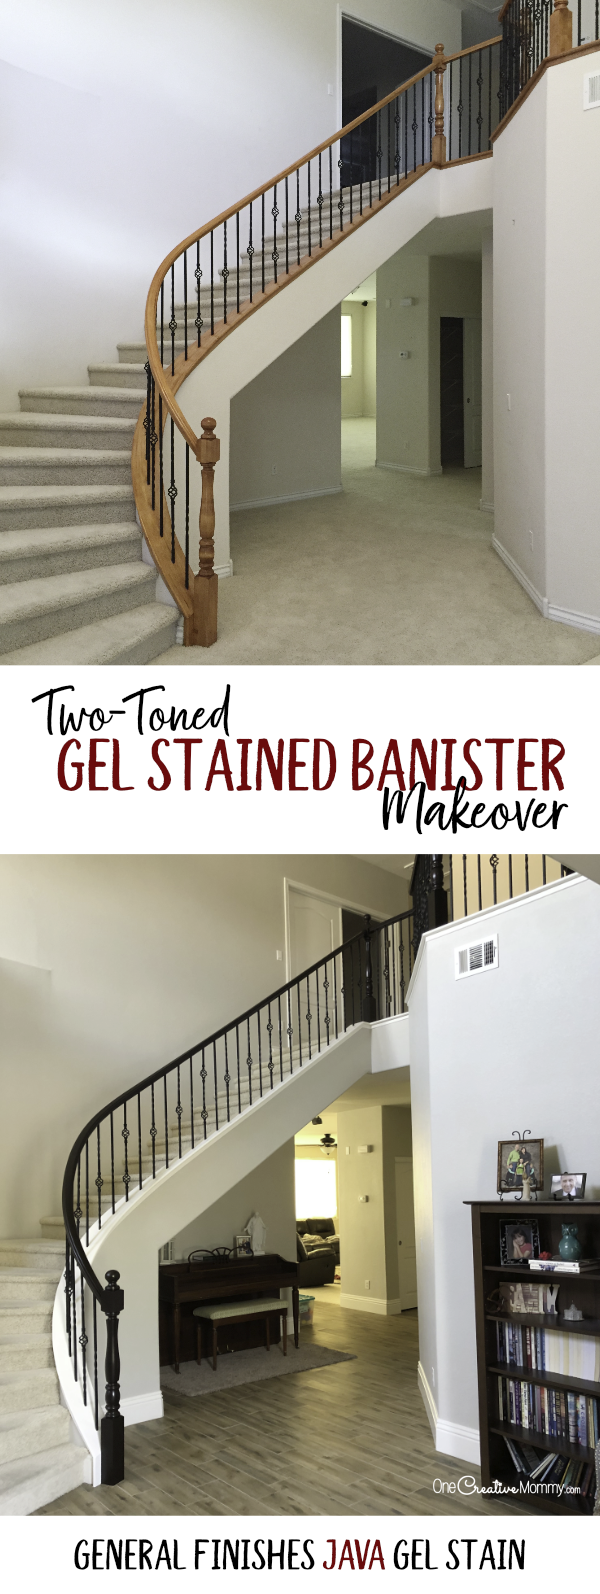 Can you believe the before and after in this staircase makeover? Java gel stain is so pretty! {OneCreativeMommy.com} #javagelstain #generalfinishesgelstiain #staircasemakeover #banistermakeover #tutorial #video